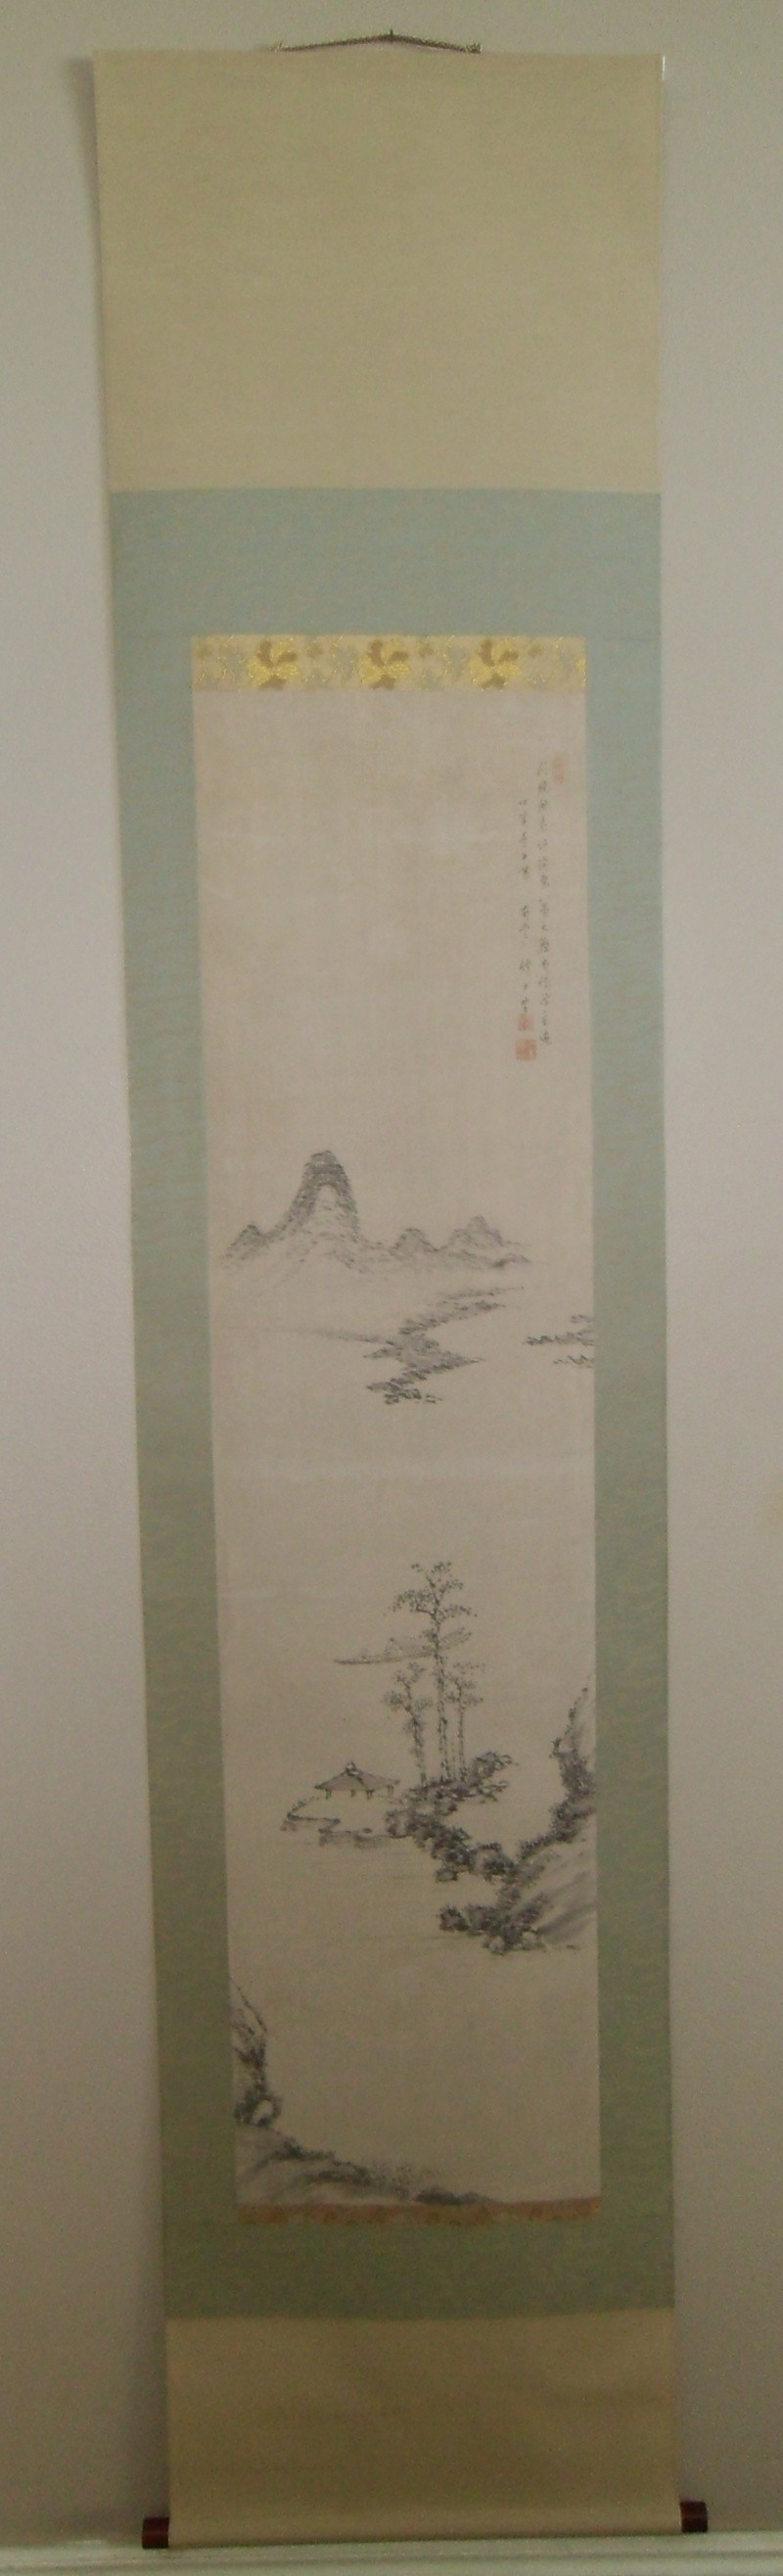 Wall scroll remount 1 & 2 Sumie_10